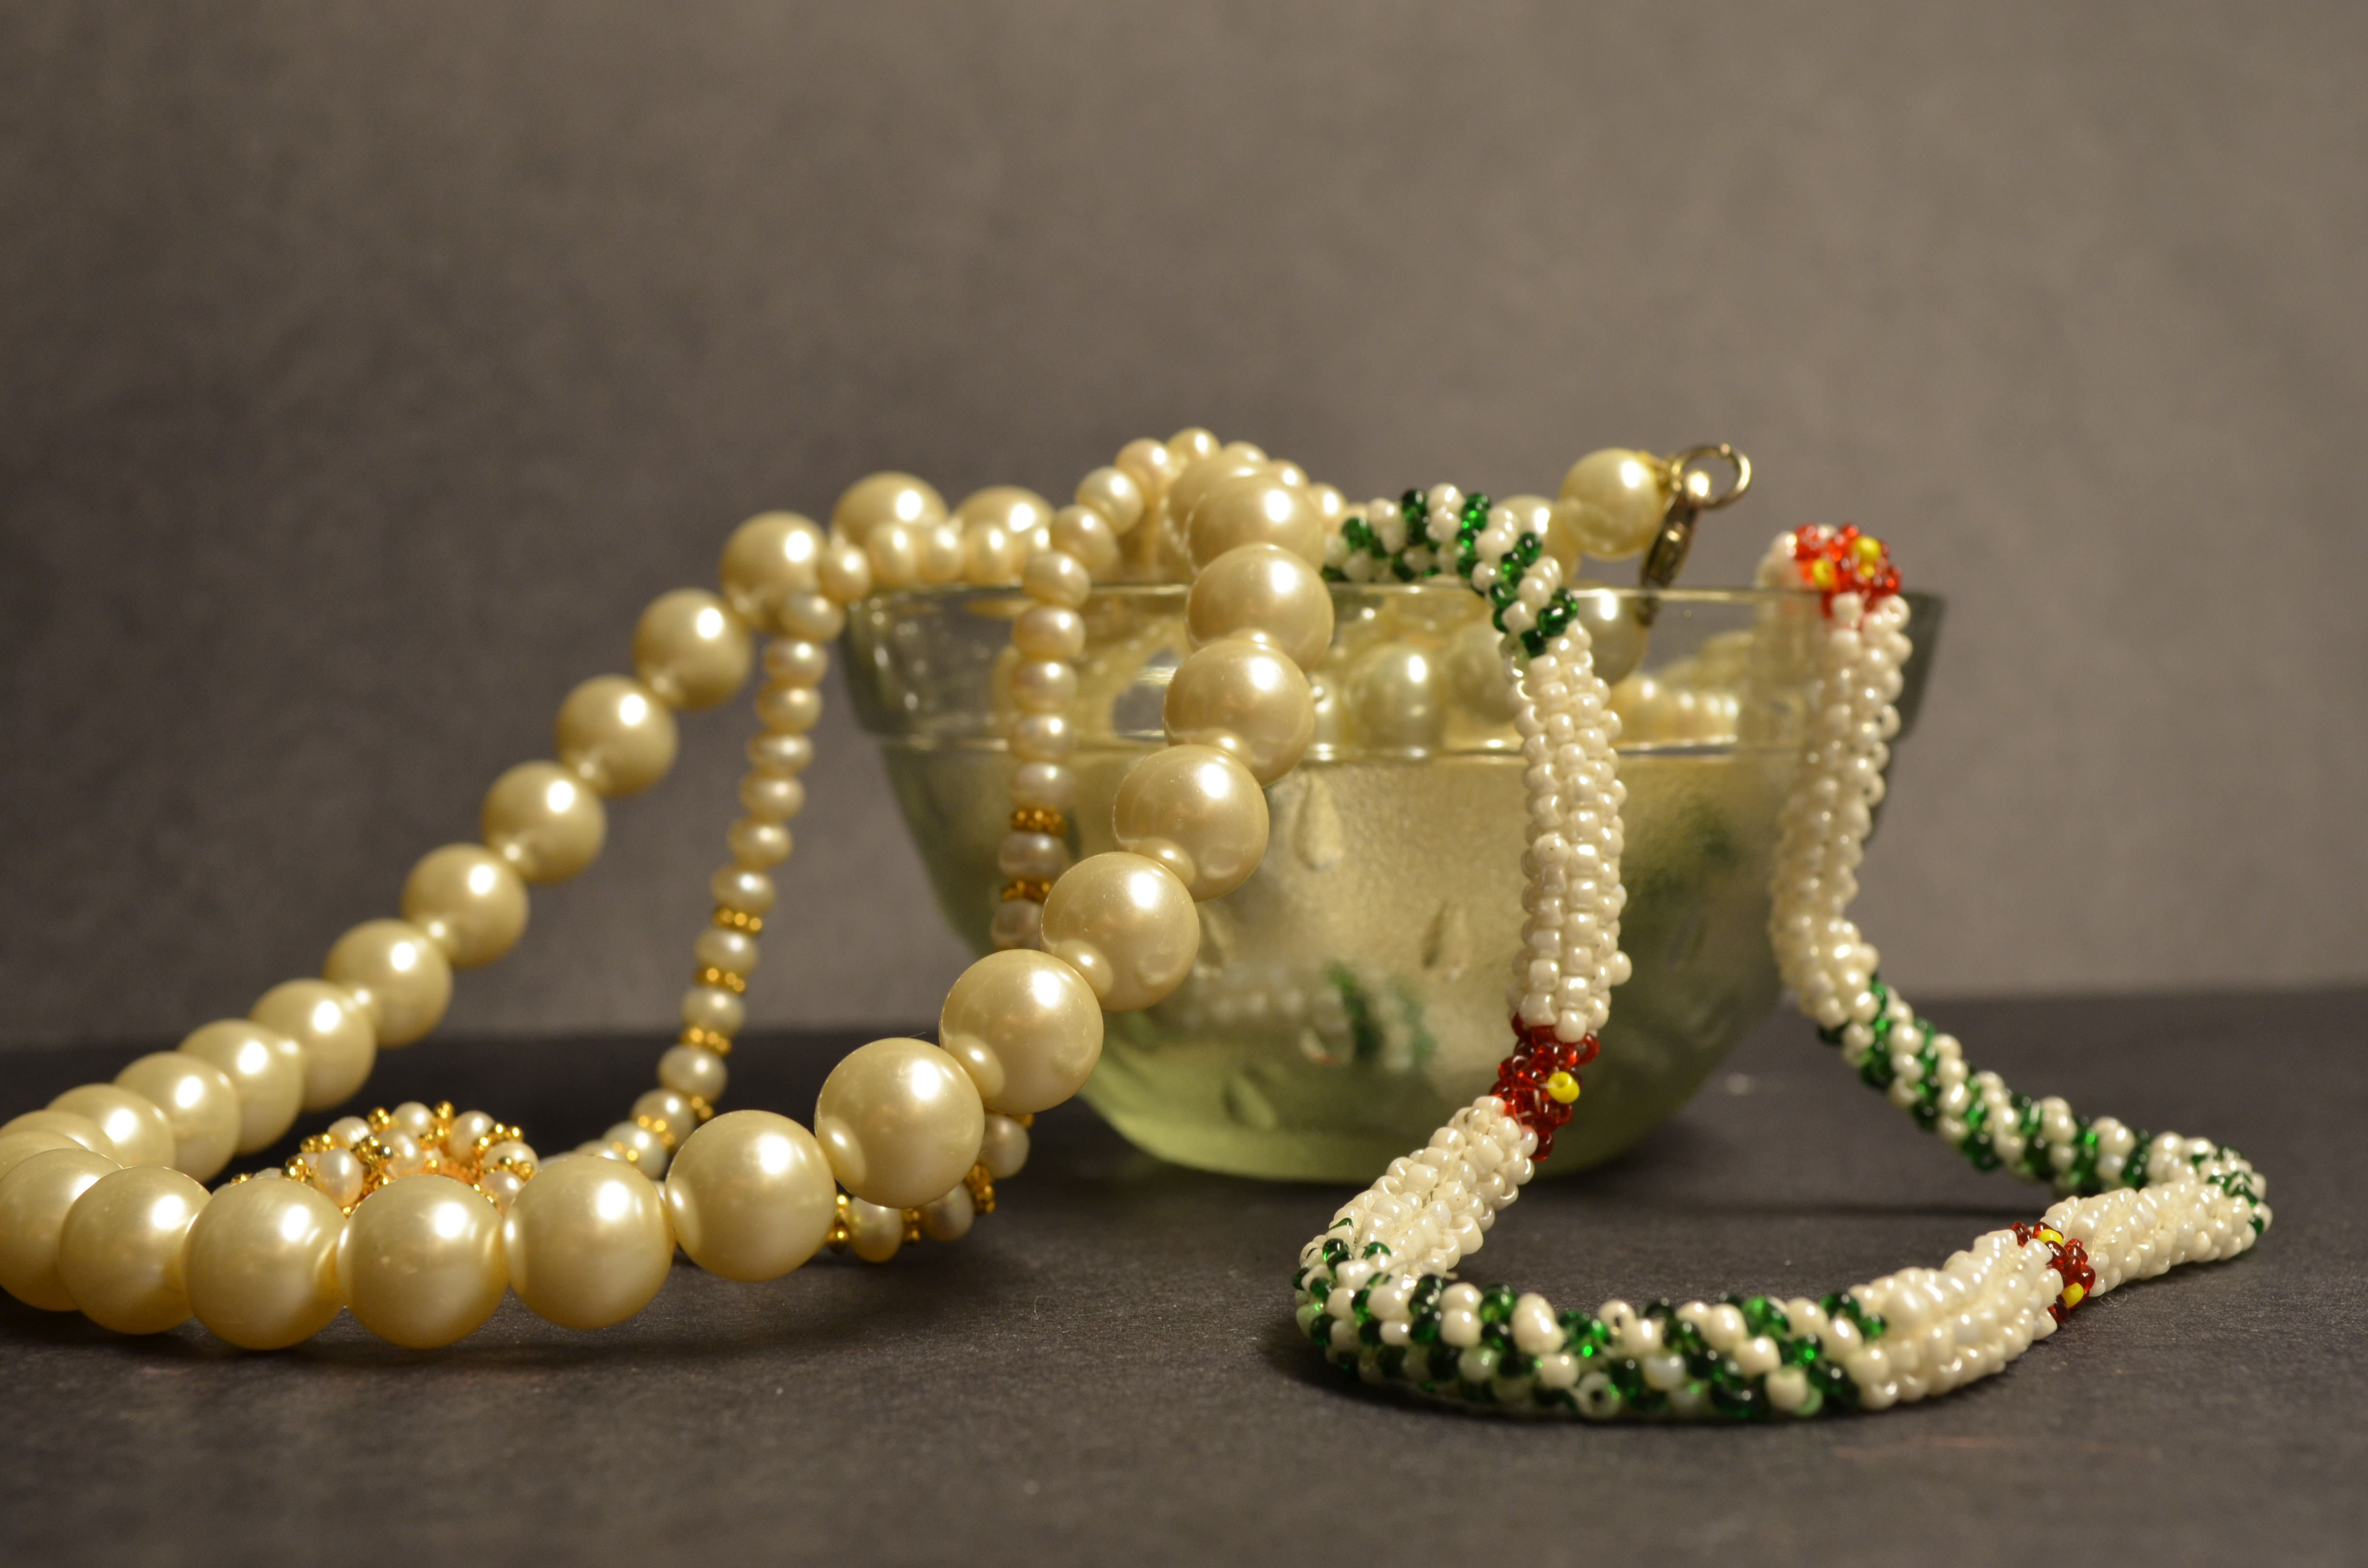 Valuables Expensive Jewelry : Public Domain Pictures